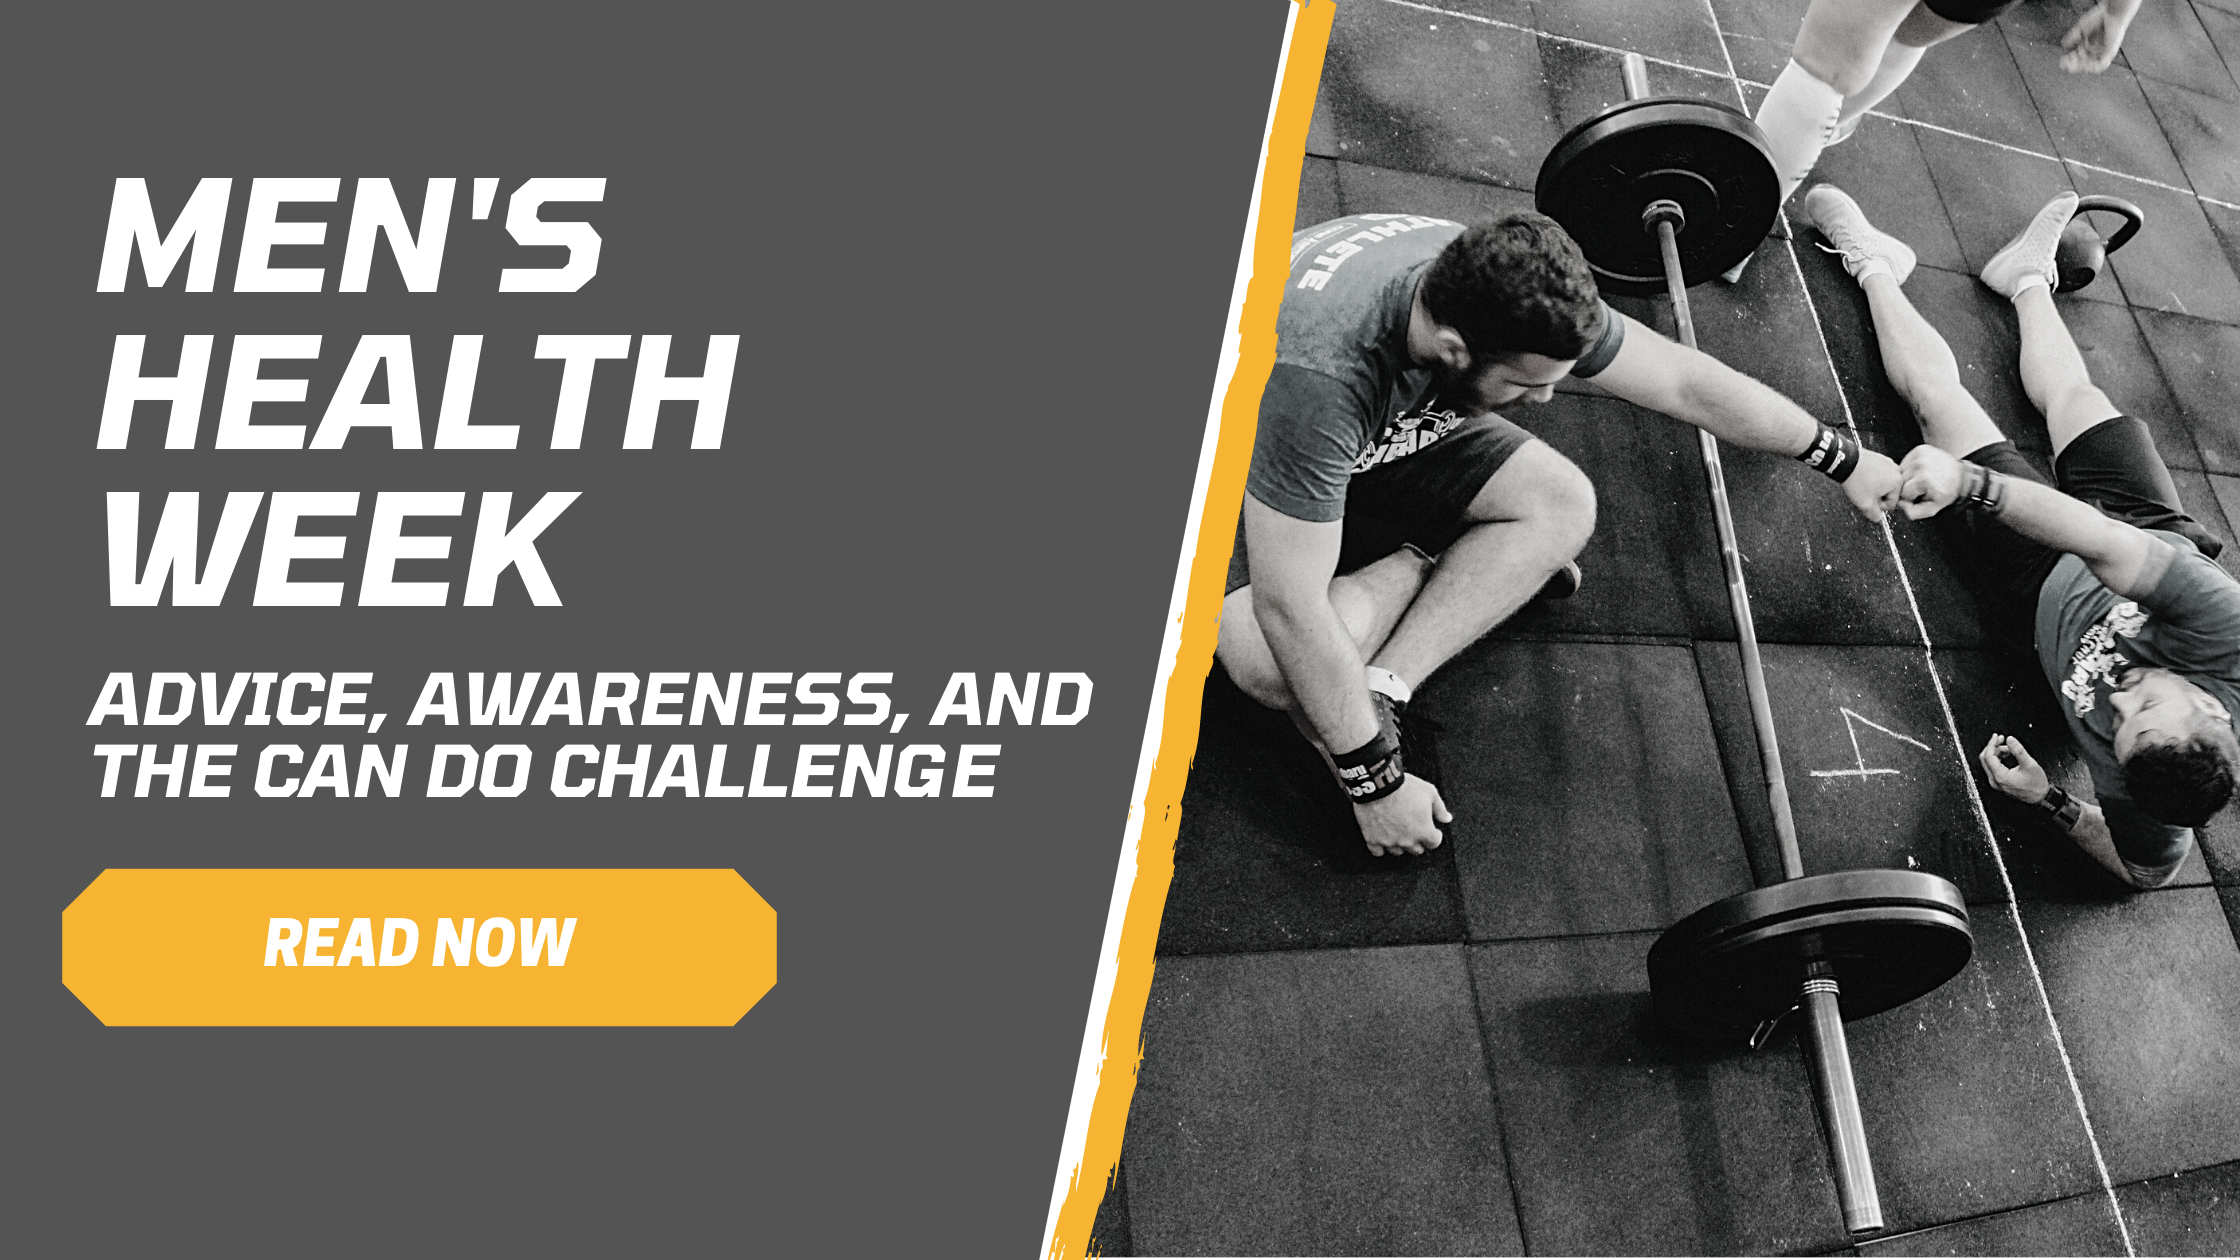 Men's health week advice, awareness, and the CAN DO challenge